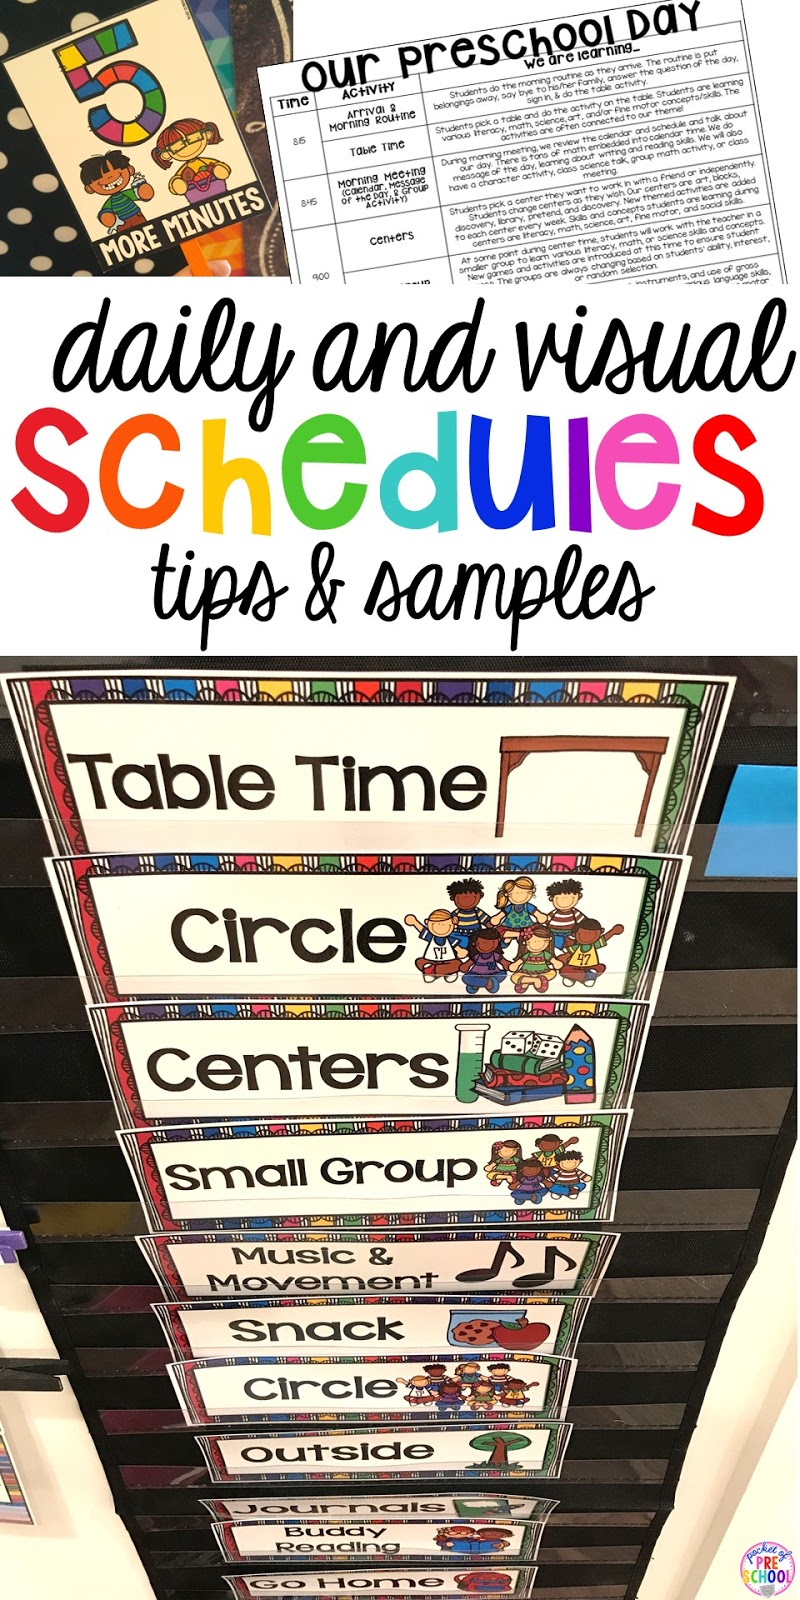 photograph relating to Free Printable Visual Schedule for Preschool titled Preschool Day-to-day Agenda and Visible Schedules - Pocket of